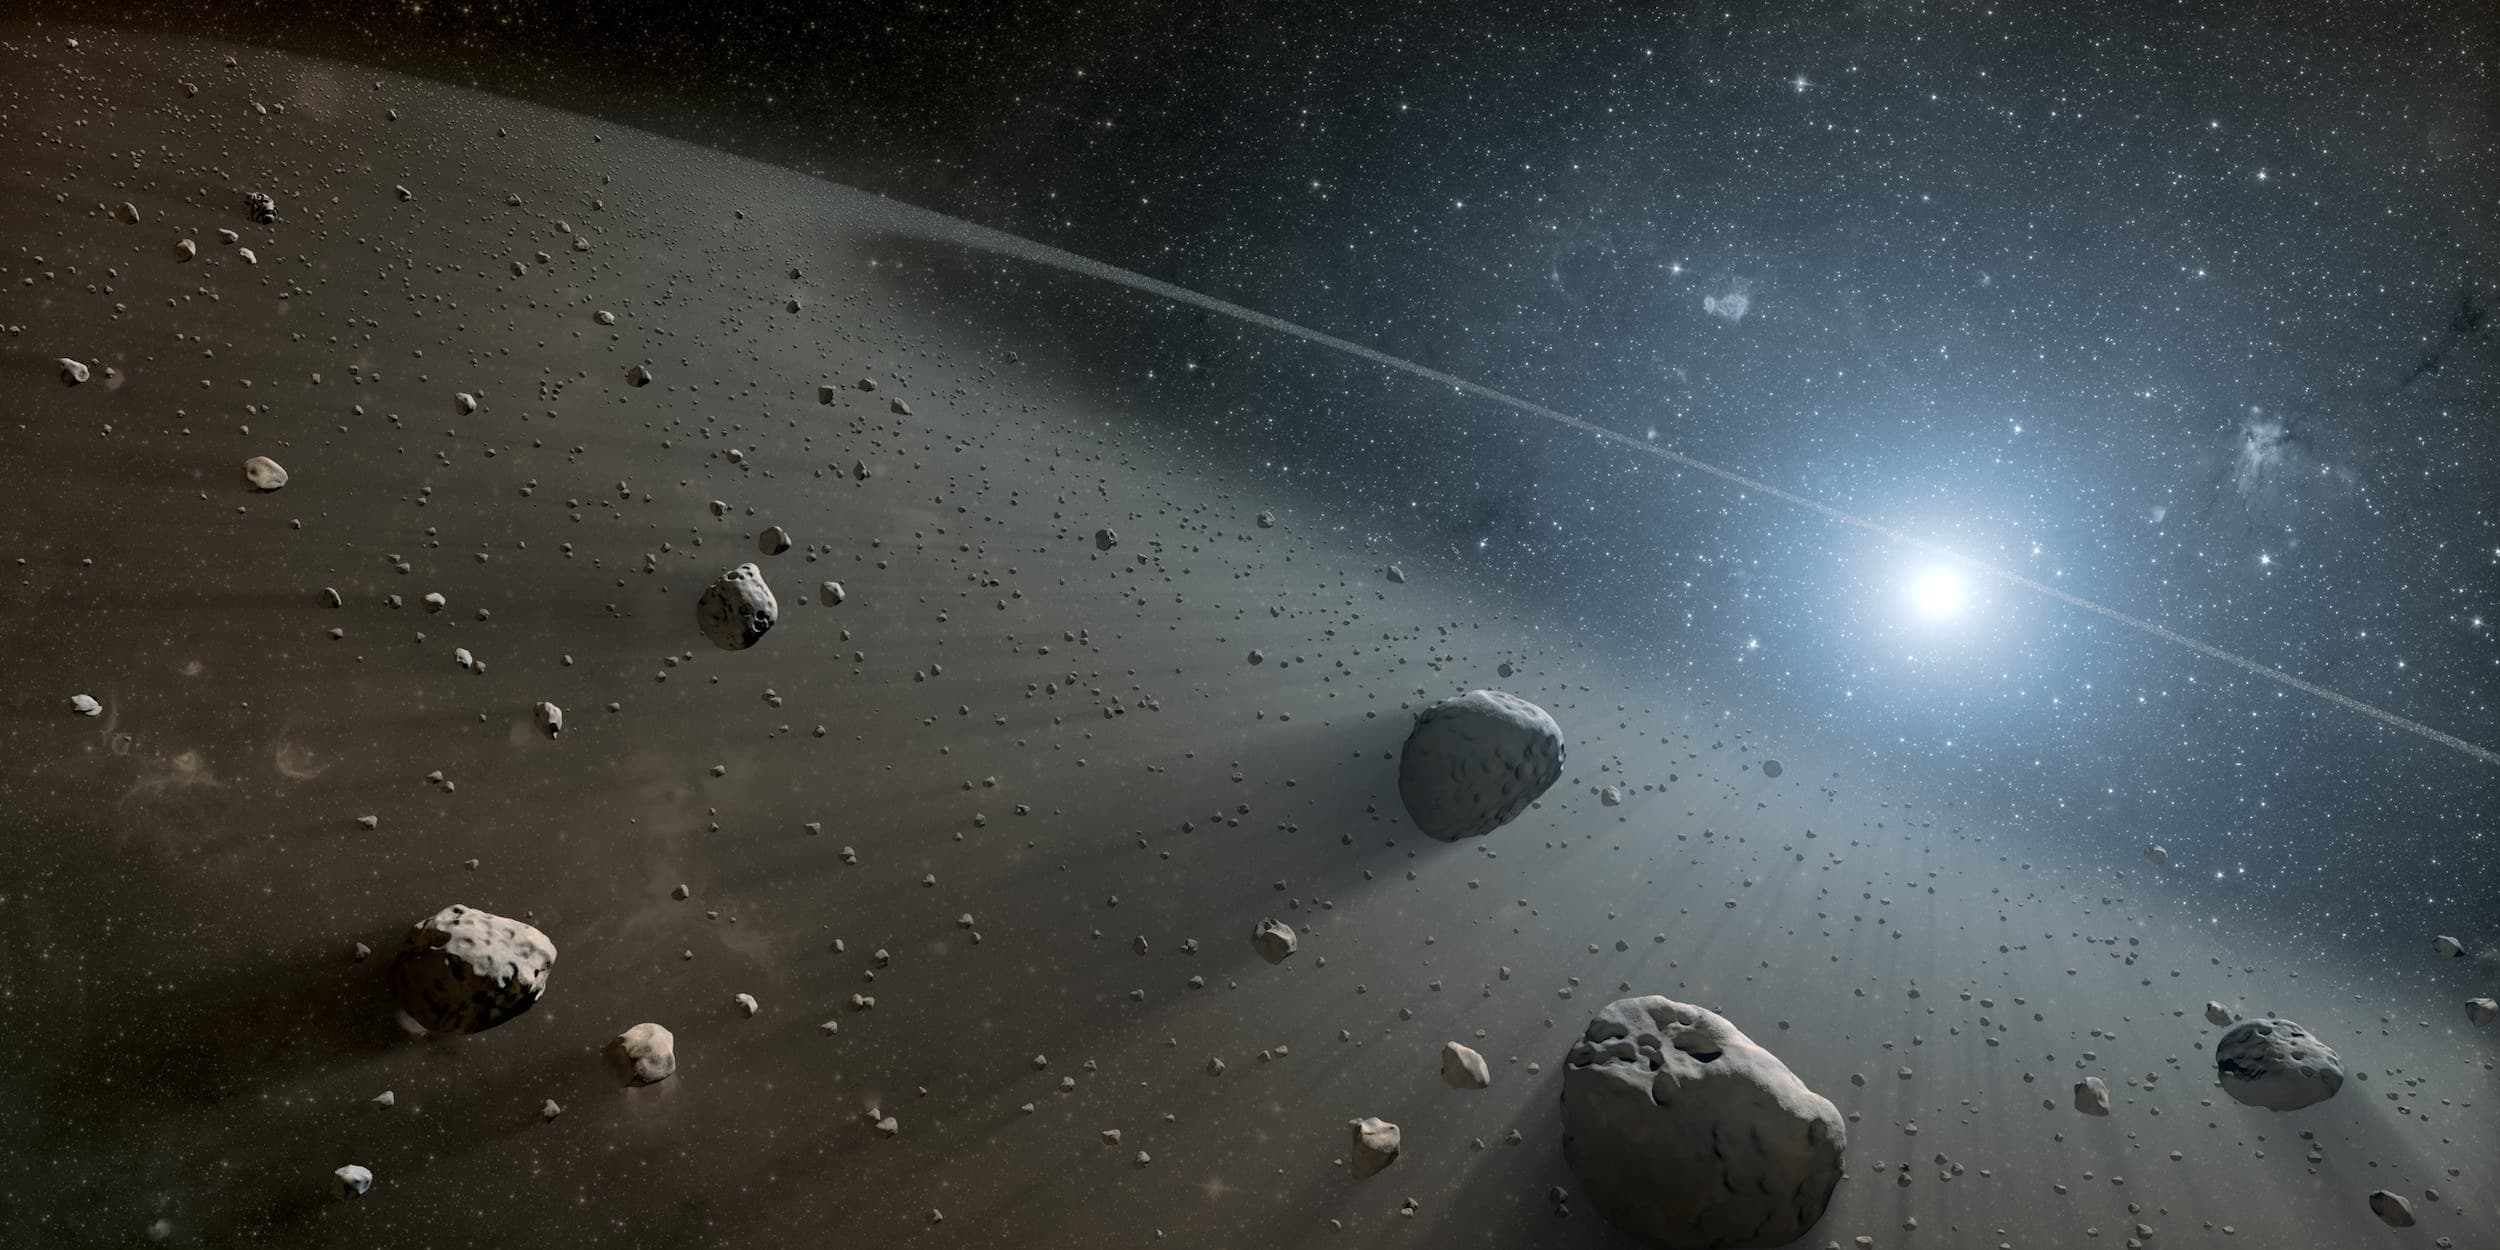 Apophis: The Asteroid That Could Smash Into the Earth on April 13th, 2036